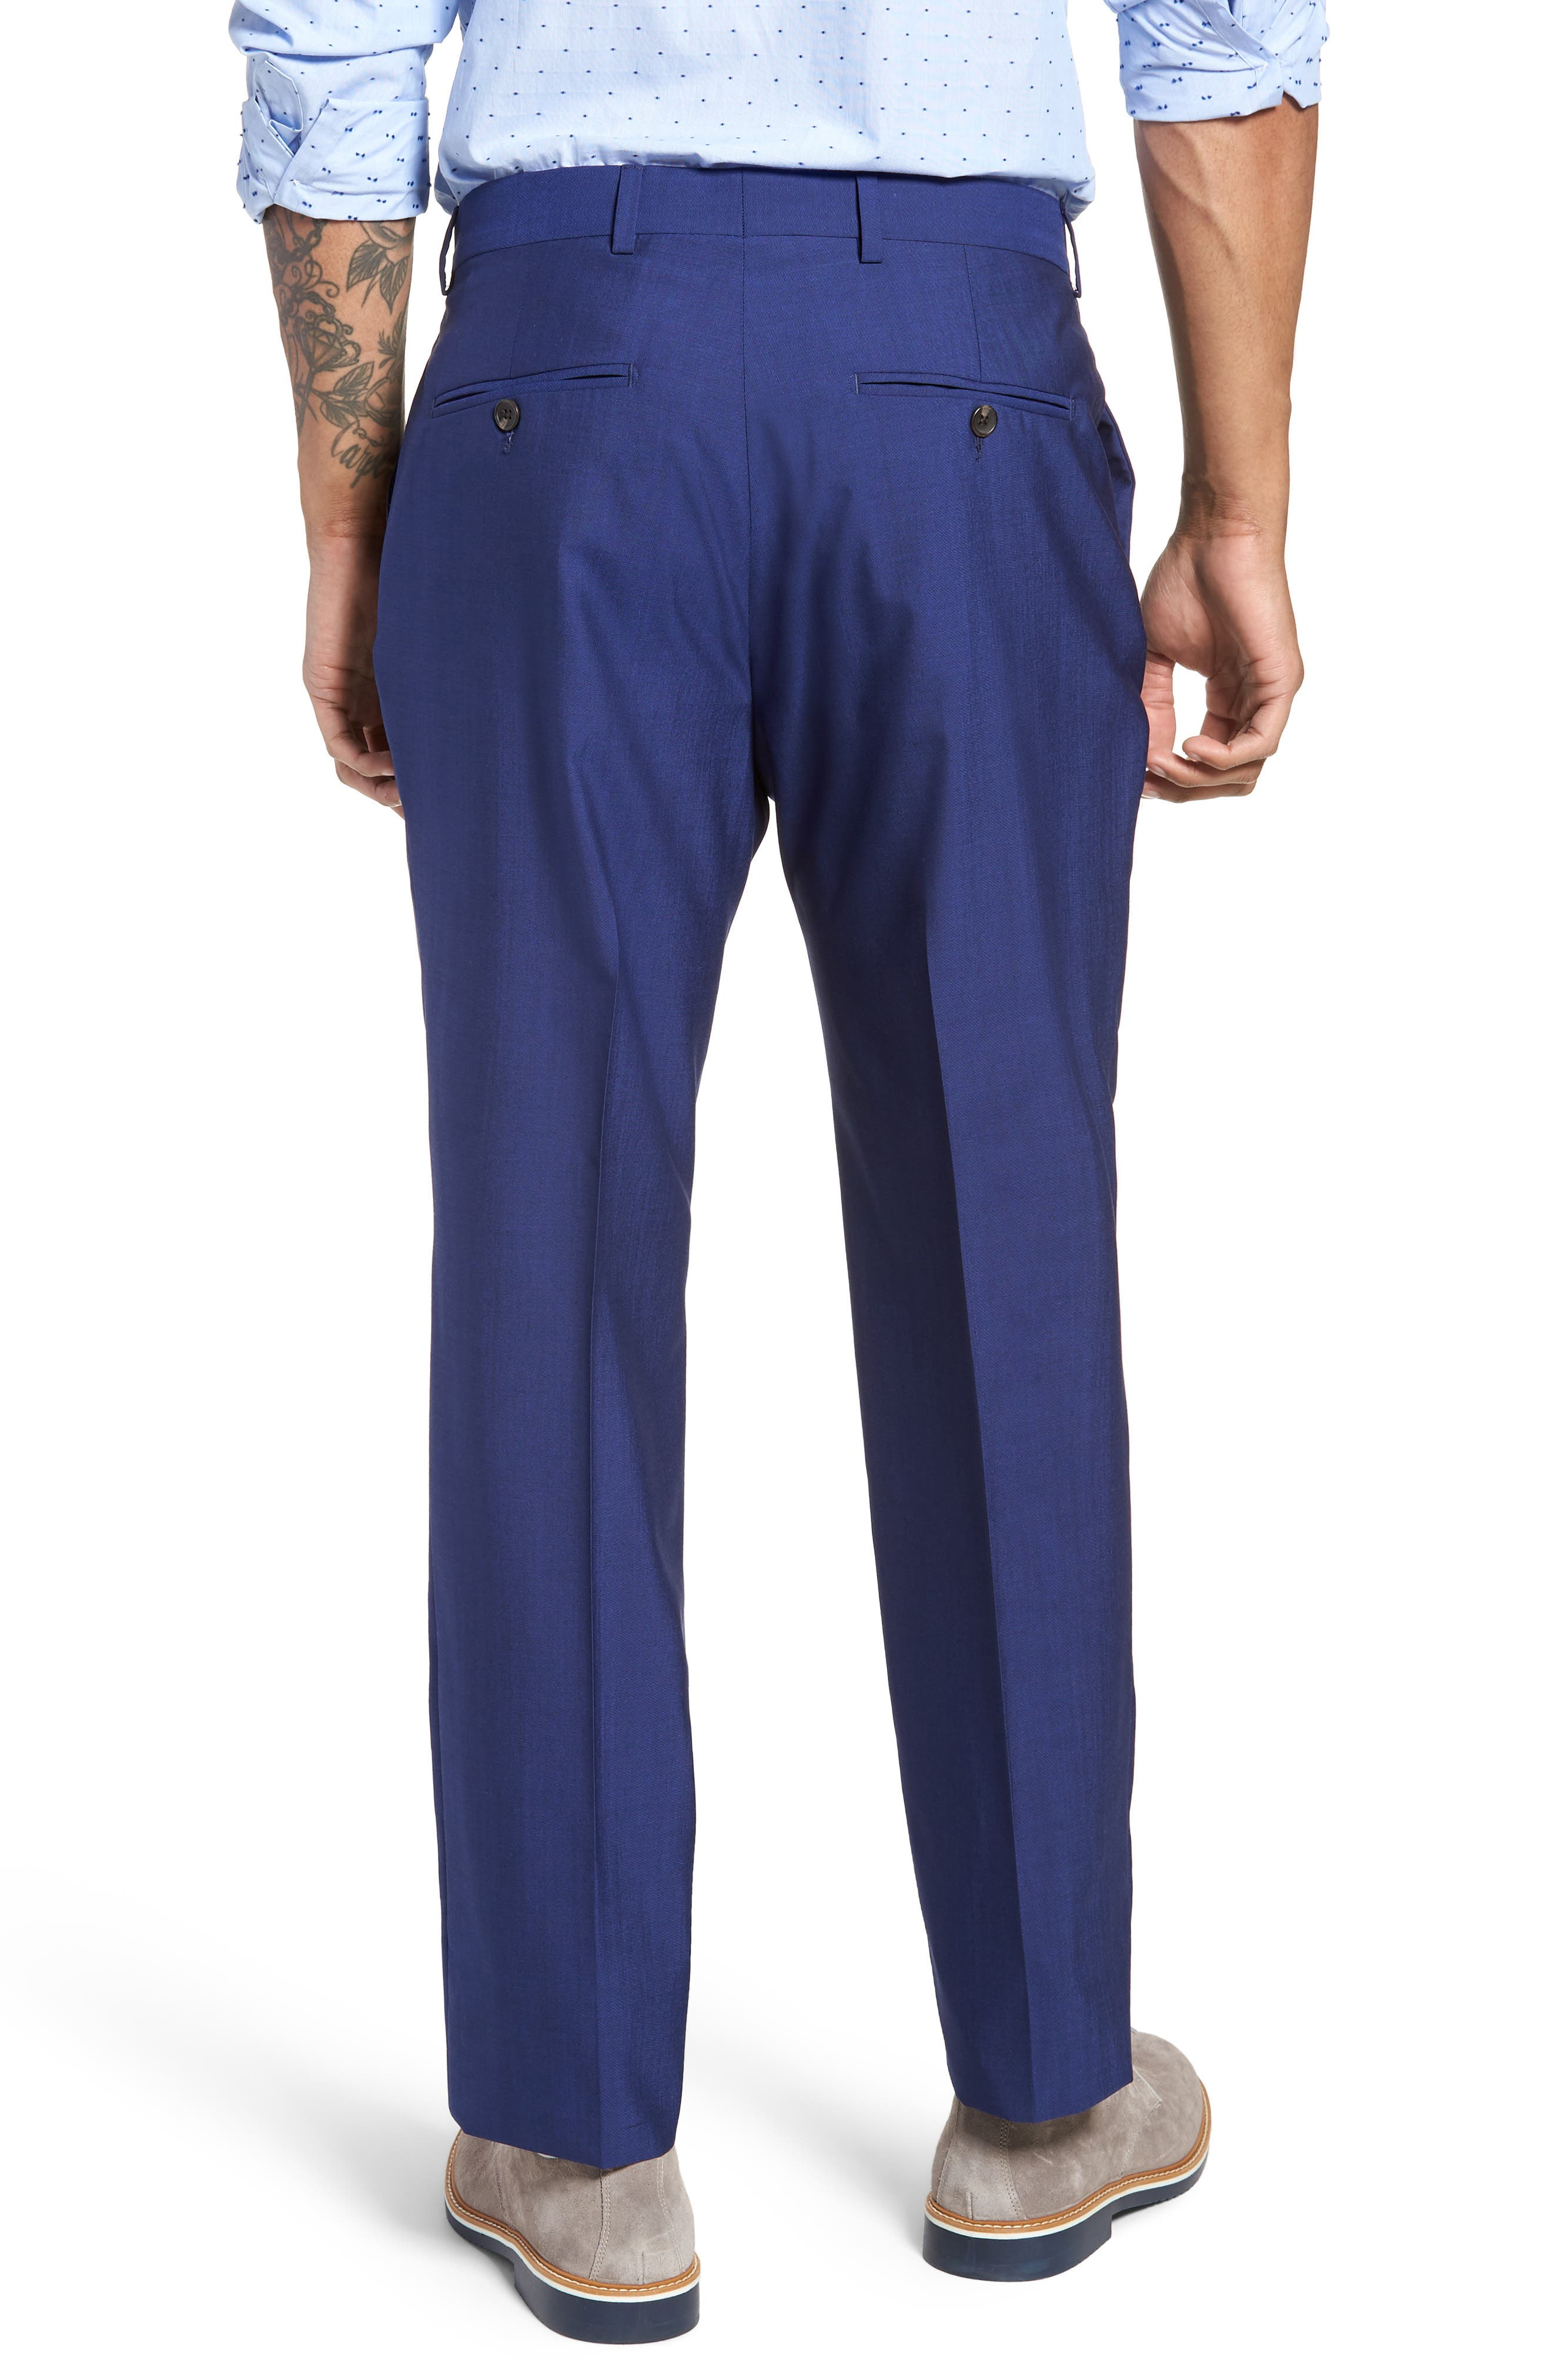 Dagger Flat Front Solid Wool Trousers,                             Alternate thumbnail 2, color,                             High Blue